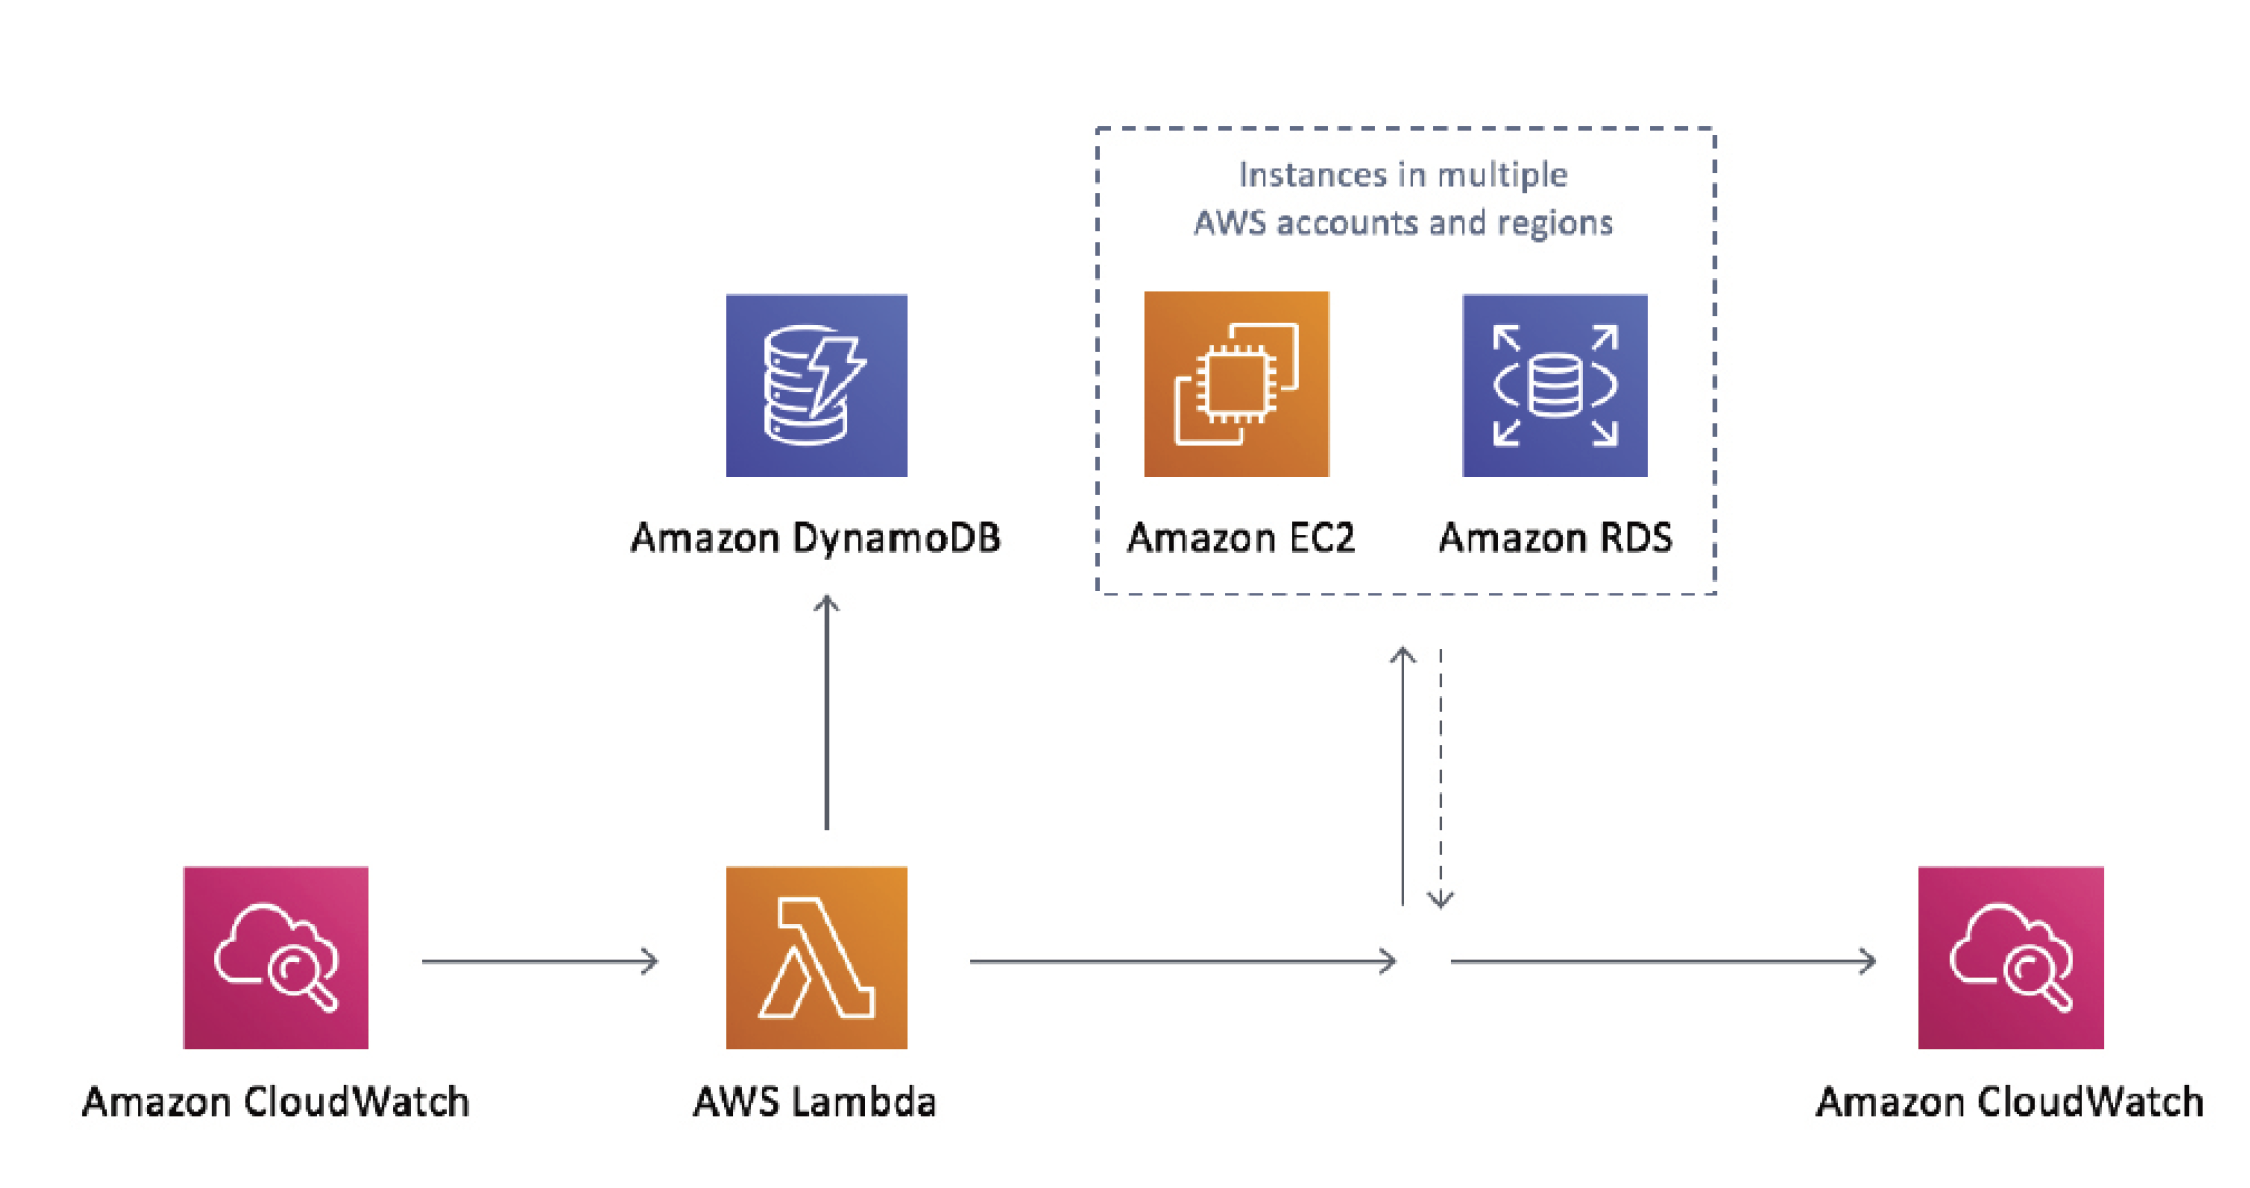 Figure 10. Amazon CloudWatch diagram